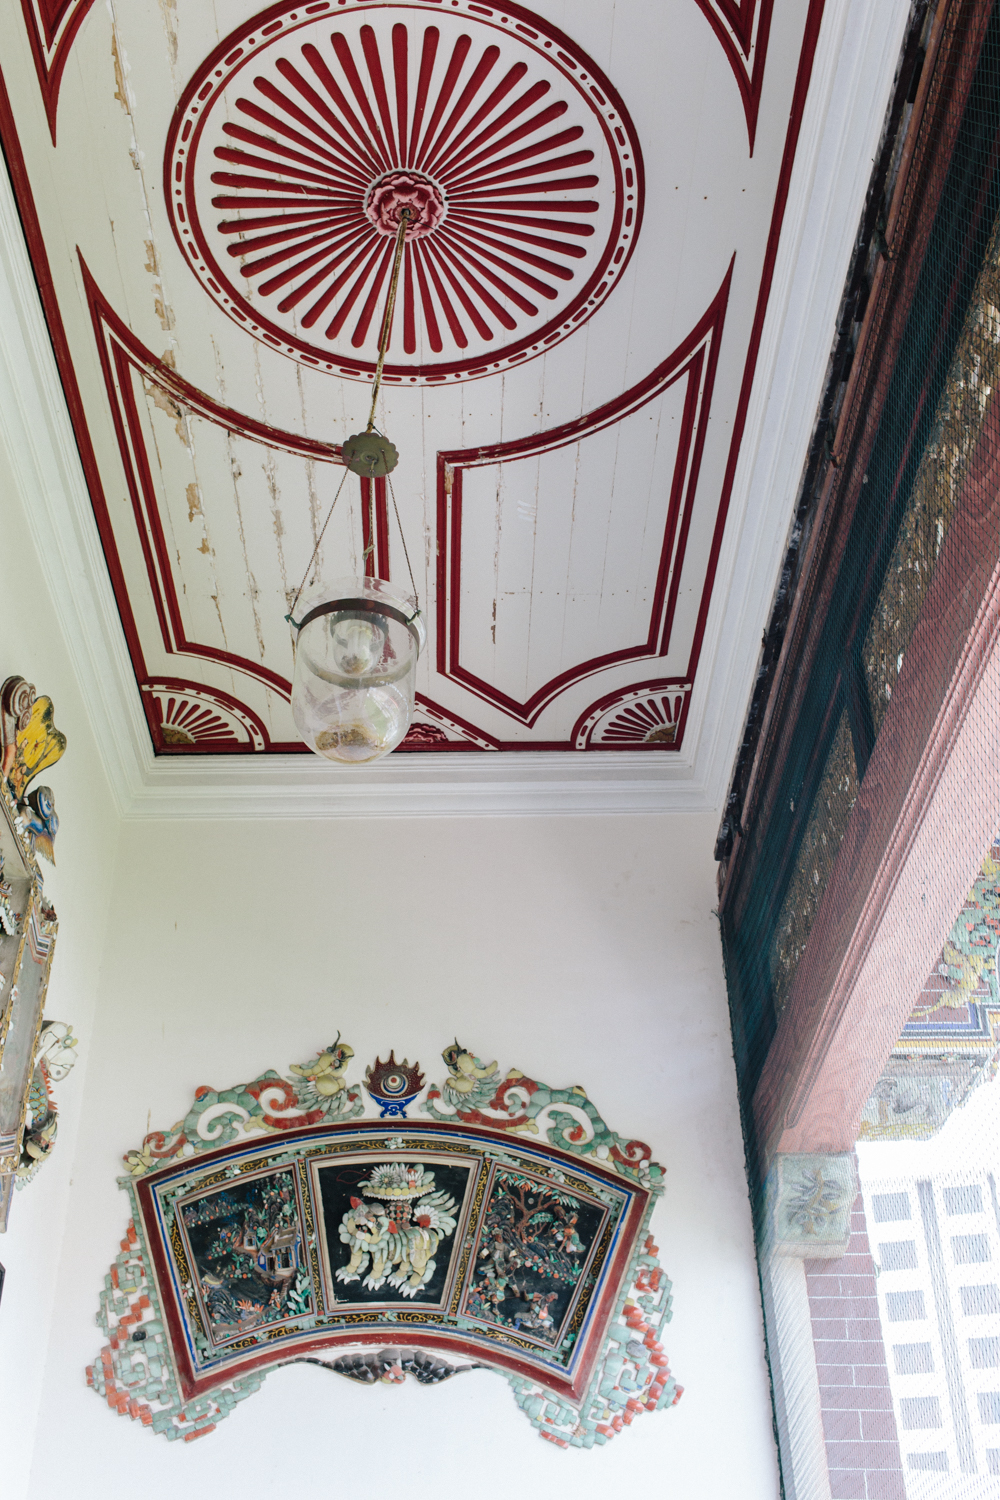 Ceiling details and one of many works of art that depict Chinese mythology.